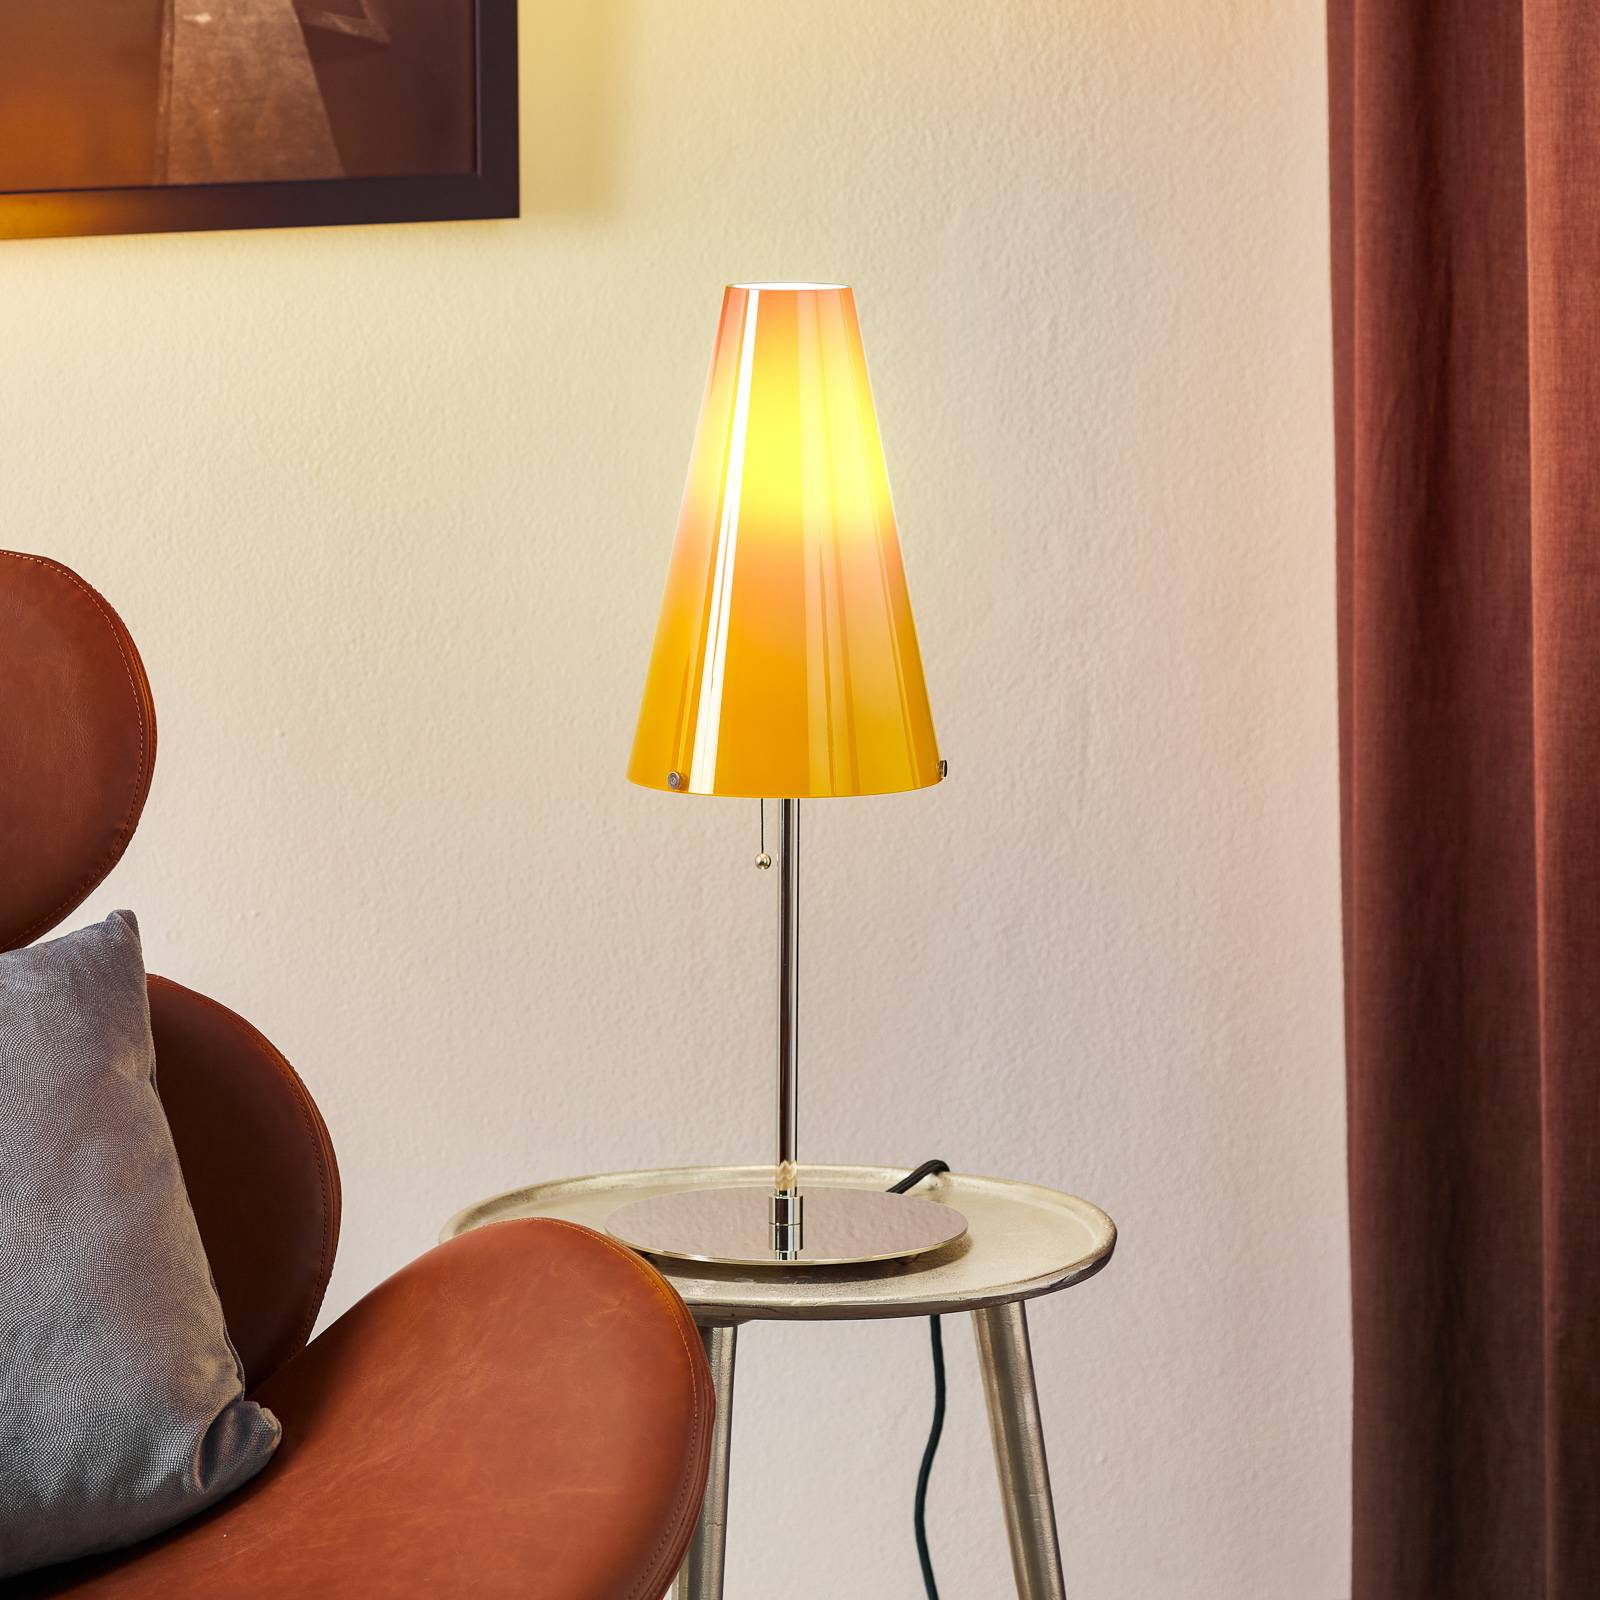 Table lamp by Walter Schnepel, melon-coloured from Tecnolumen